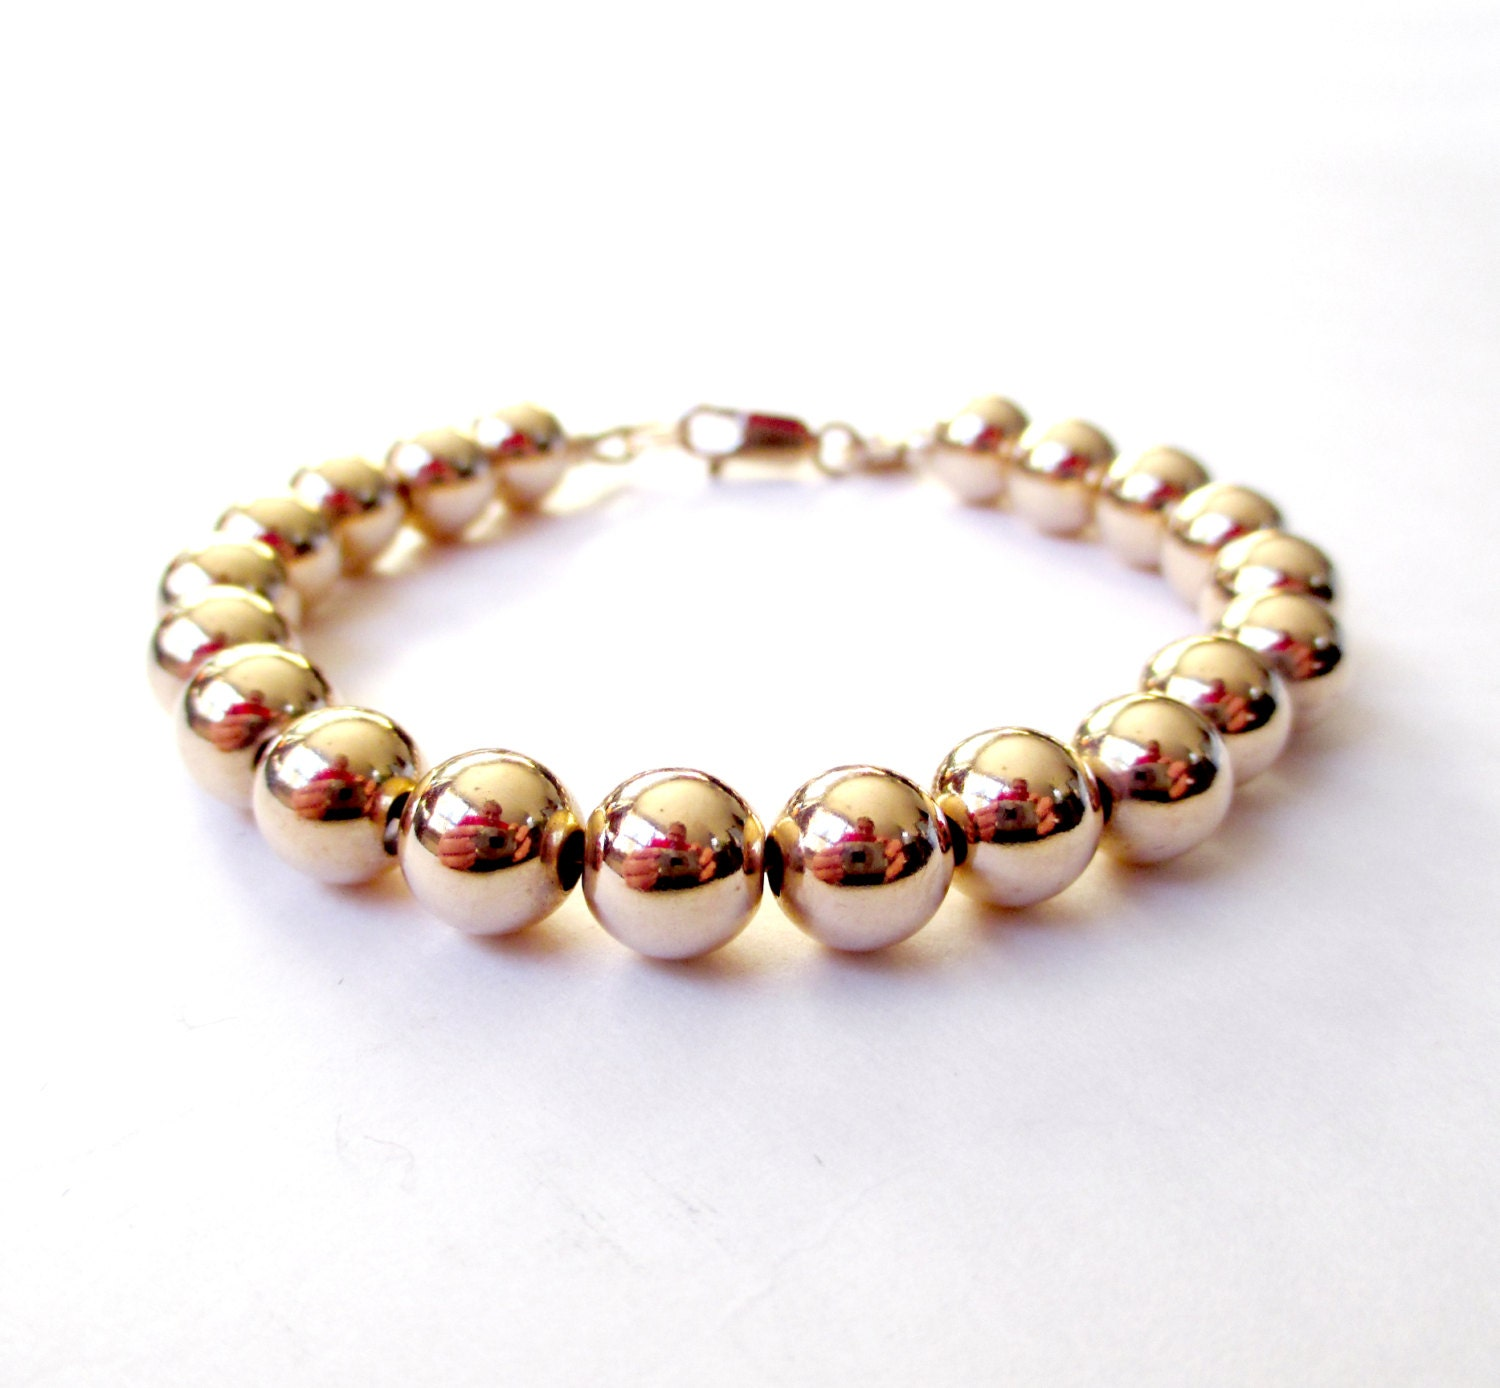 Bracelet 14K Gold Filled Bead Bracelet 8mm Beads